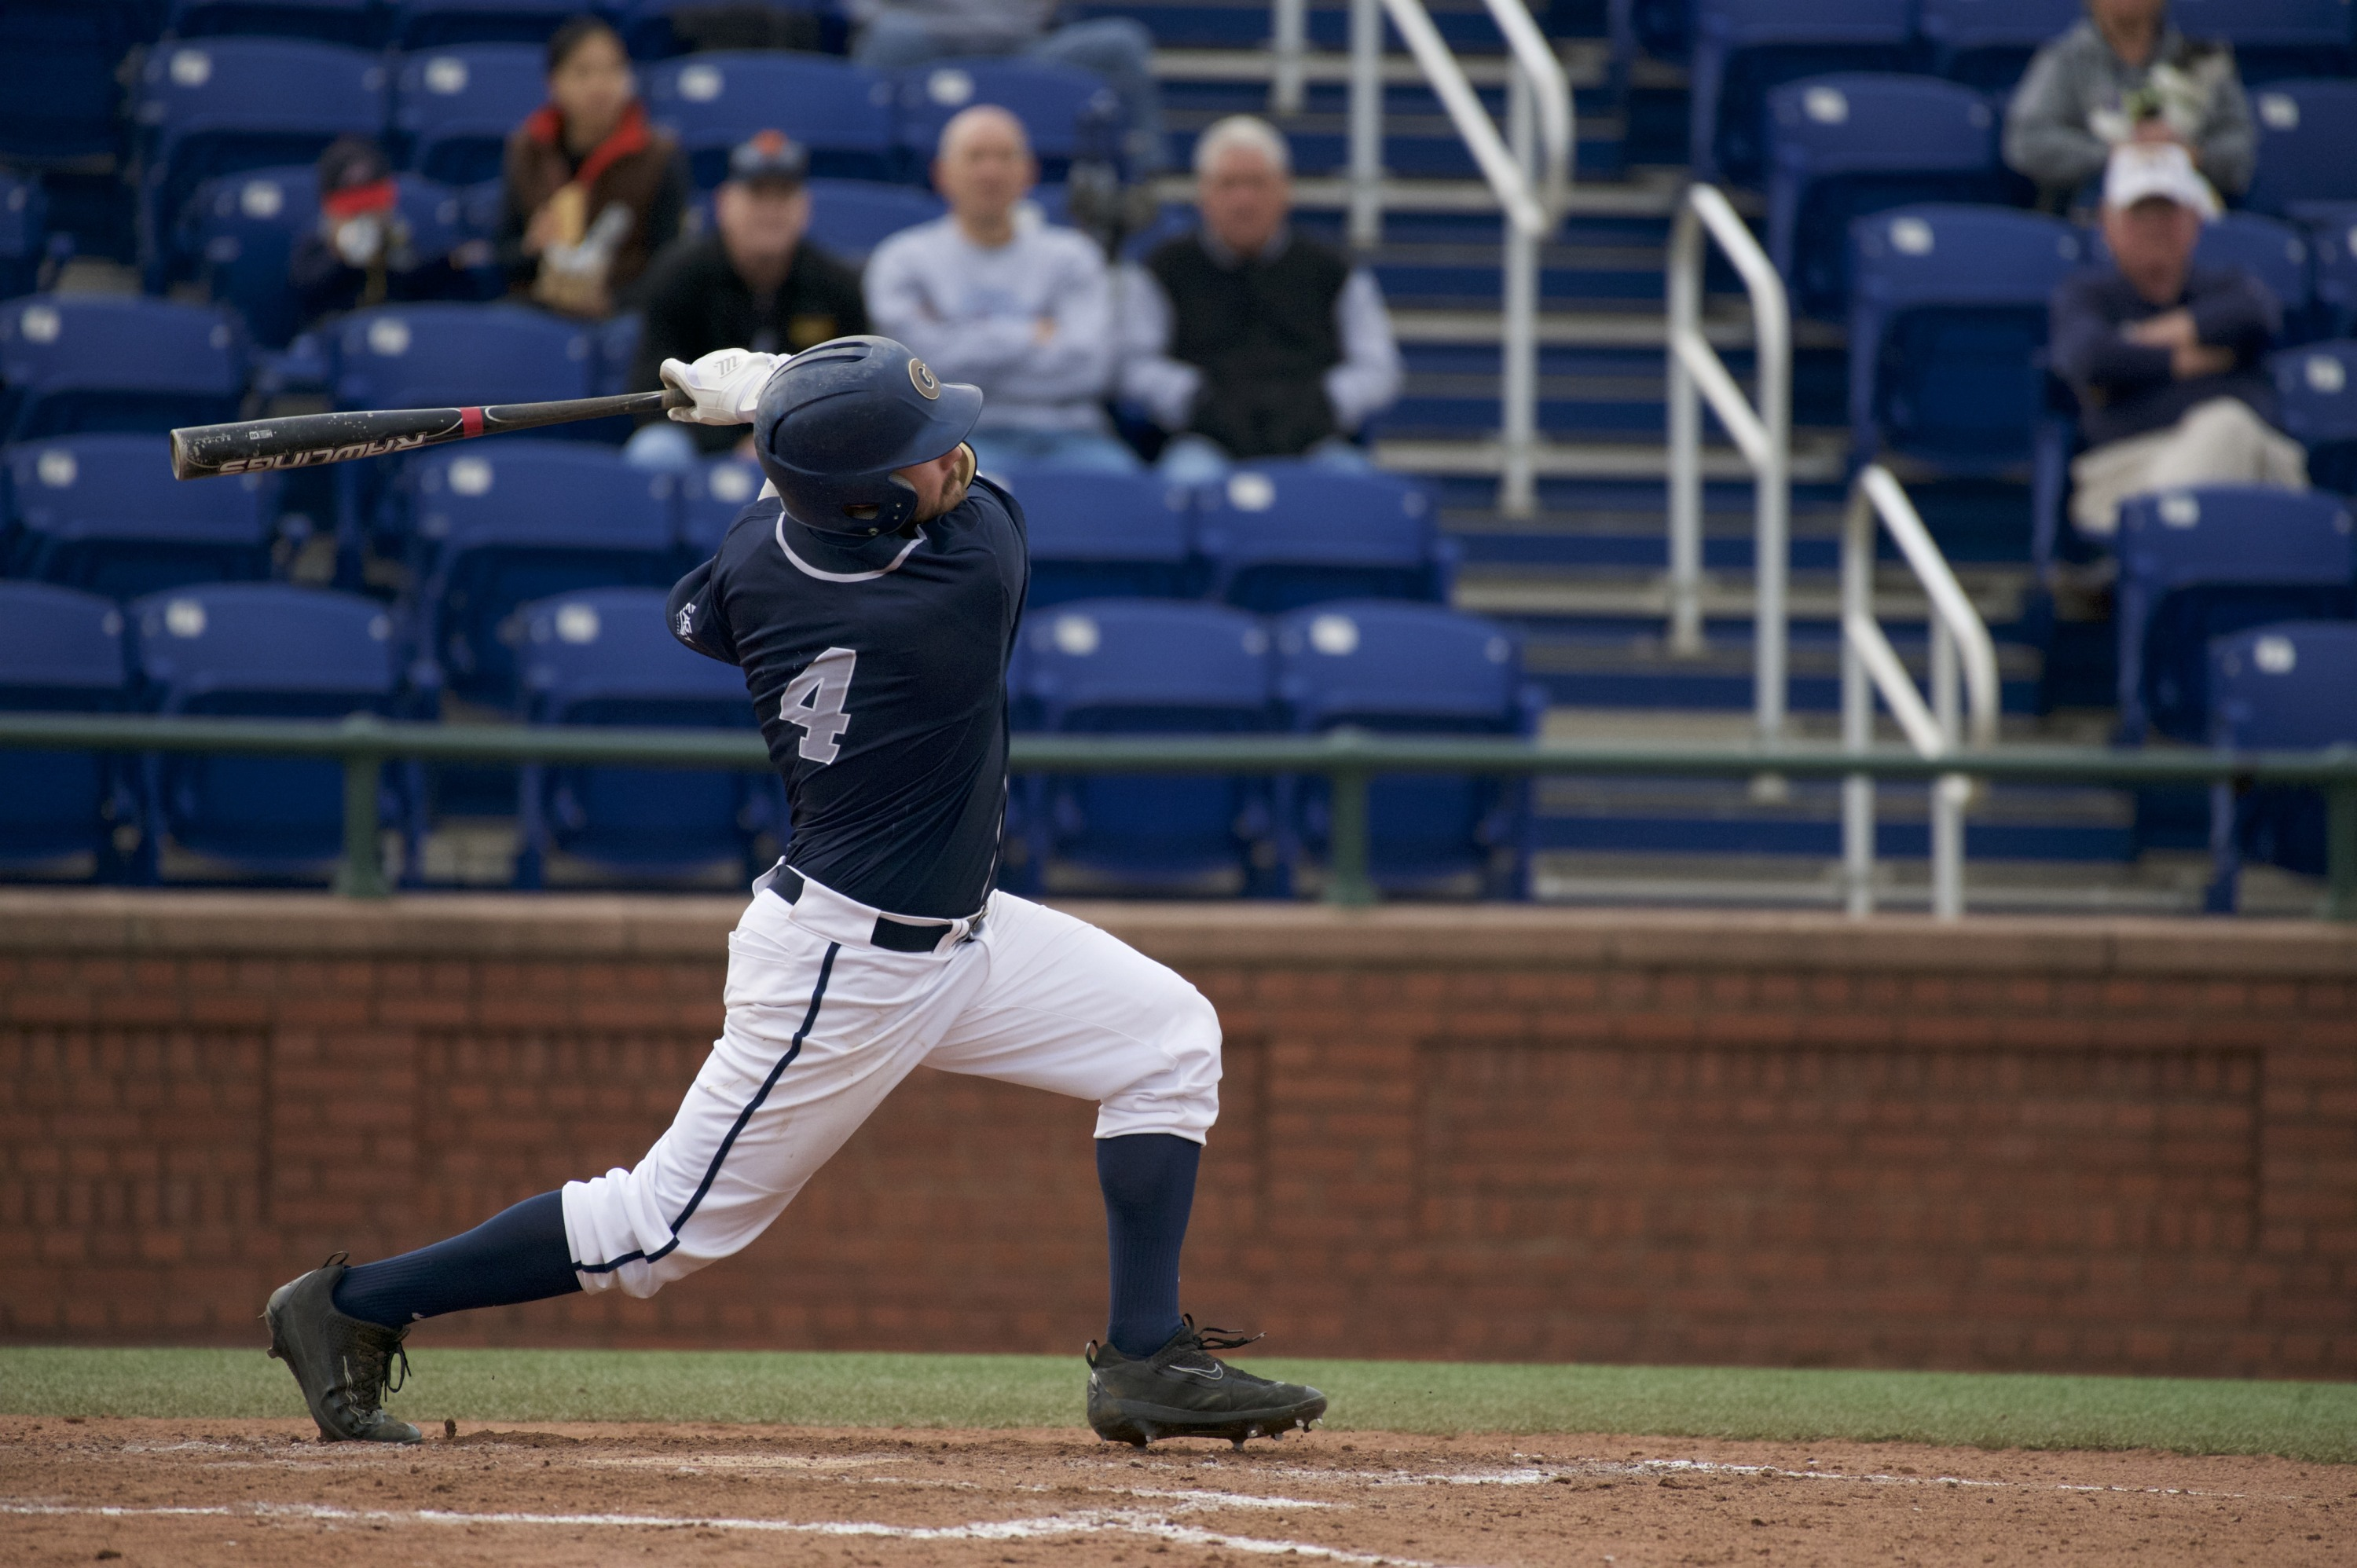 Beau Hall had three hits and three RBI in Georgetown's win in game two.